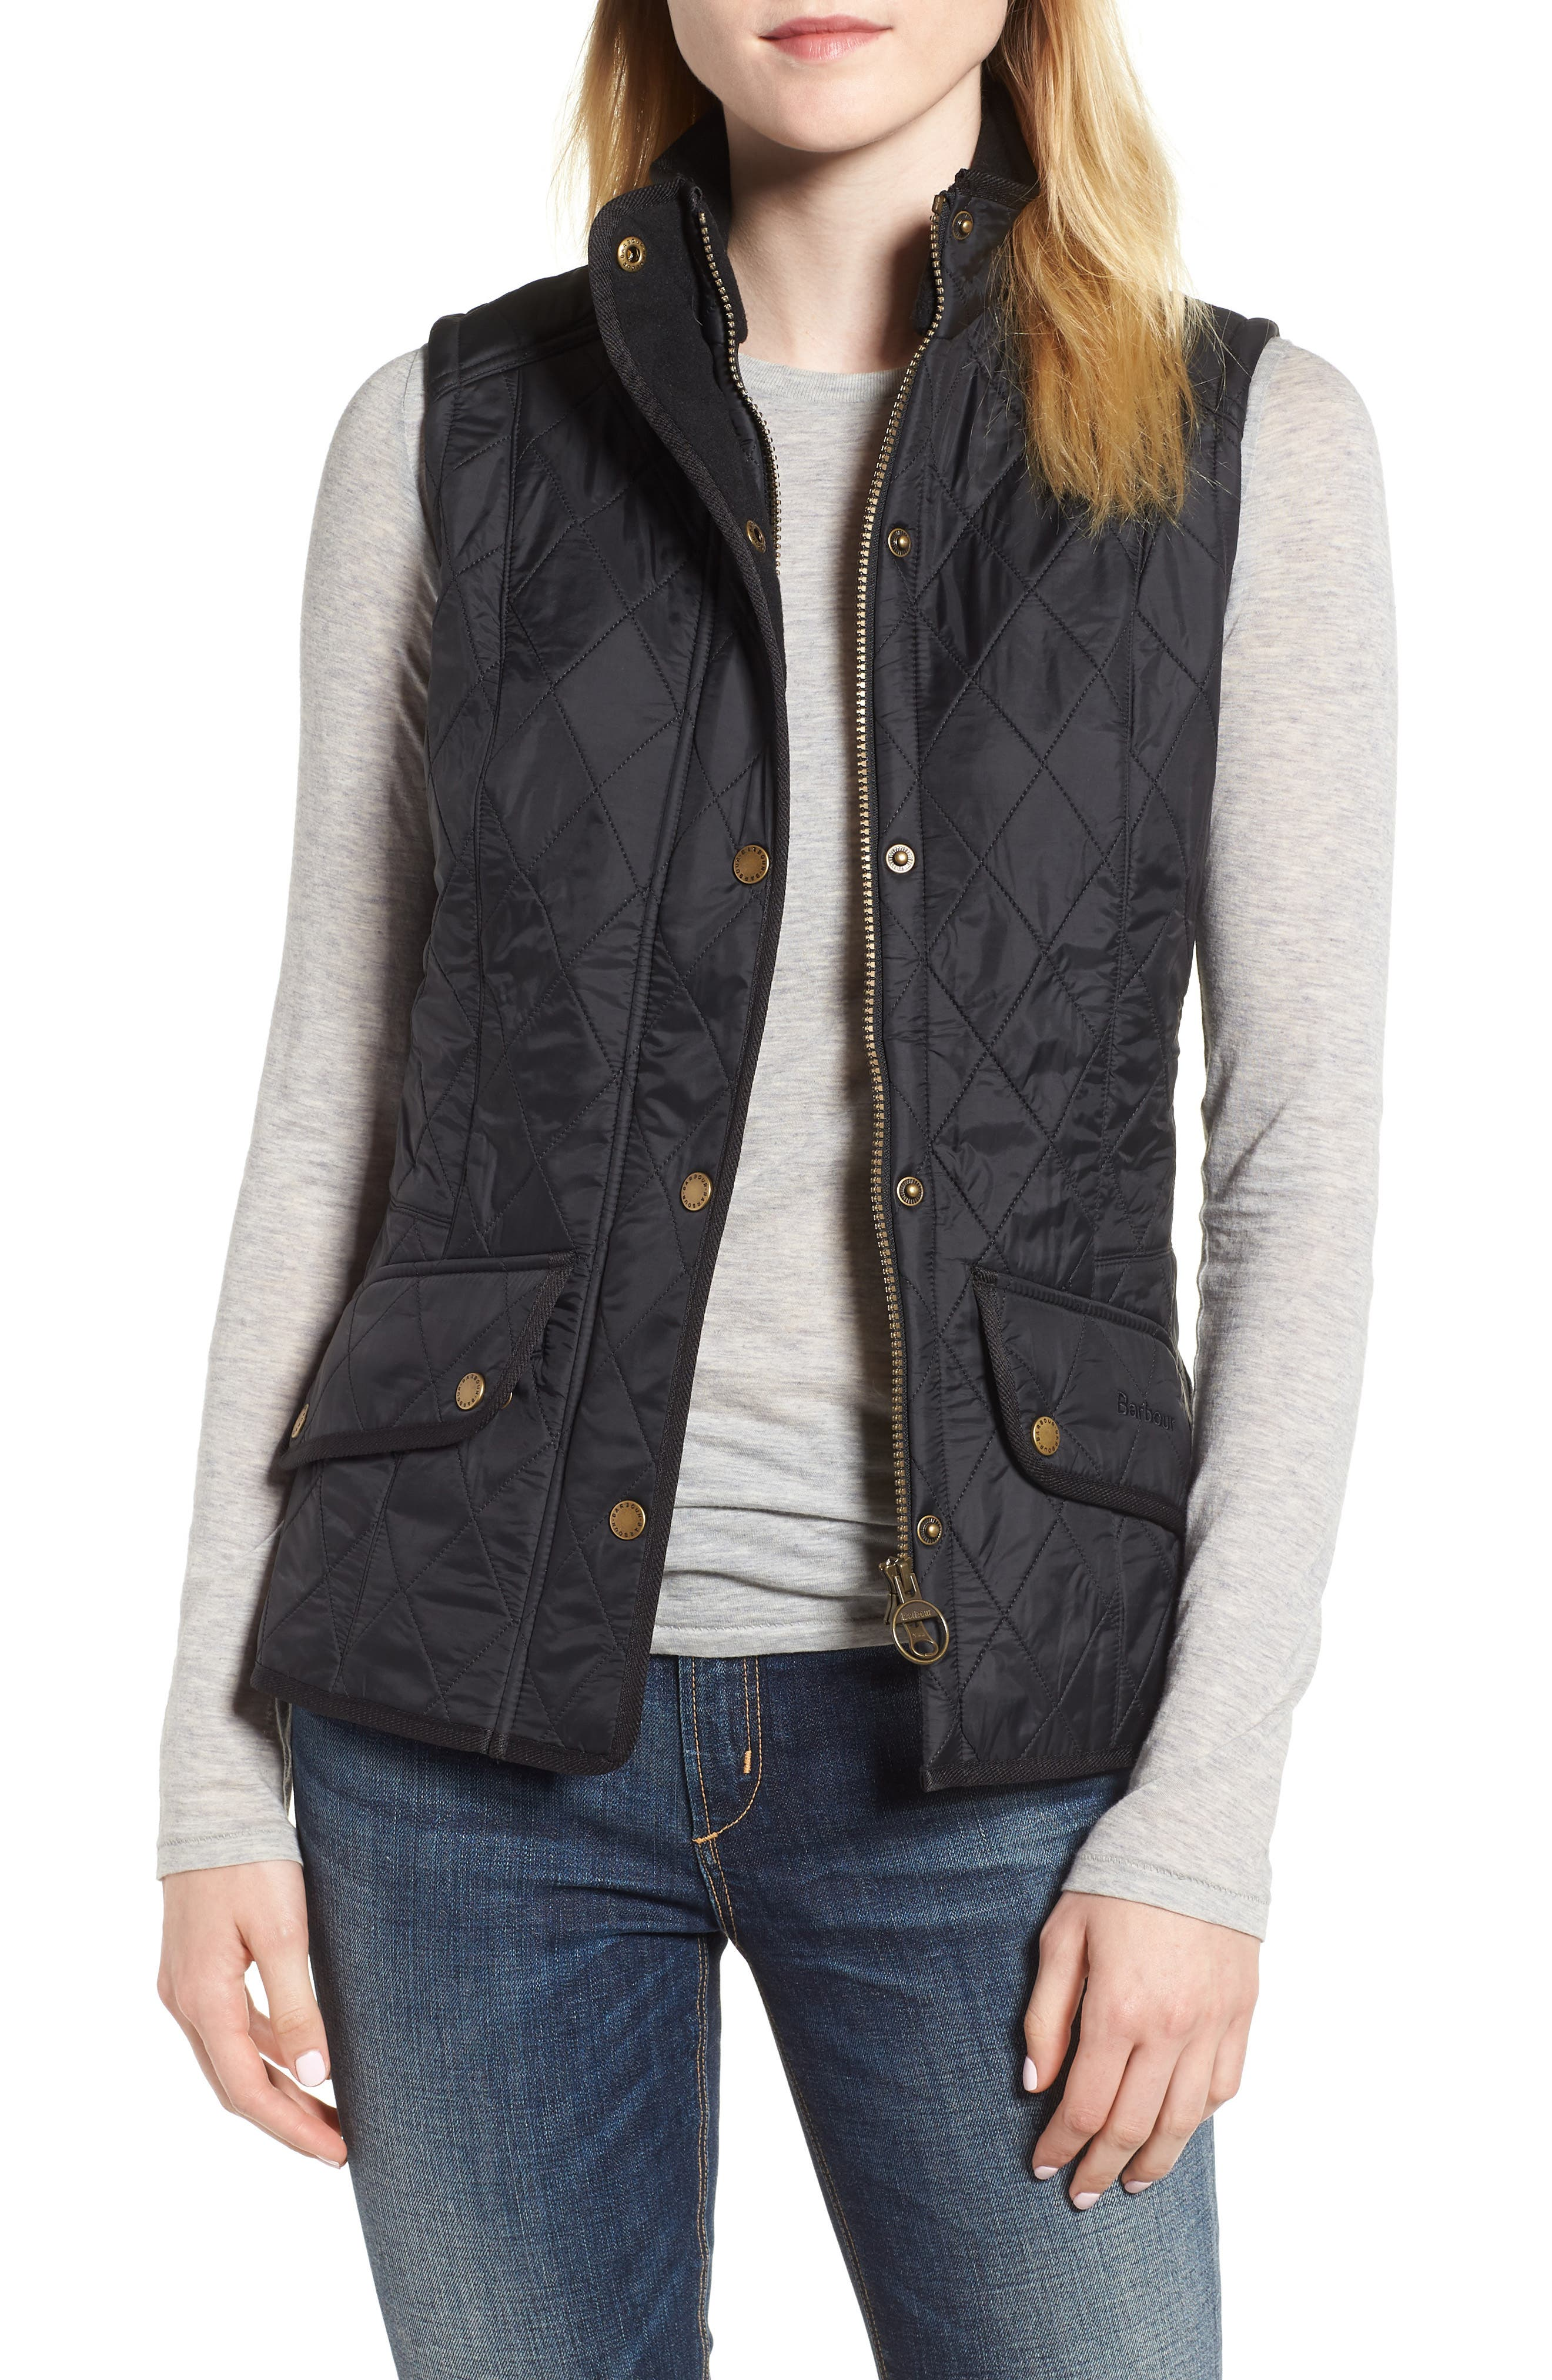 'Cavalry' Quilted Vest,                             Main thumbnail 1, color,                             BLACK/ BLACK